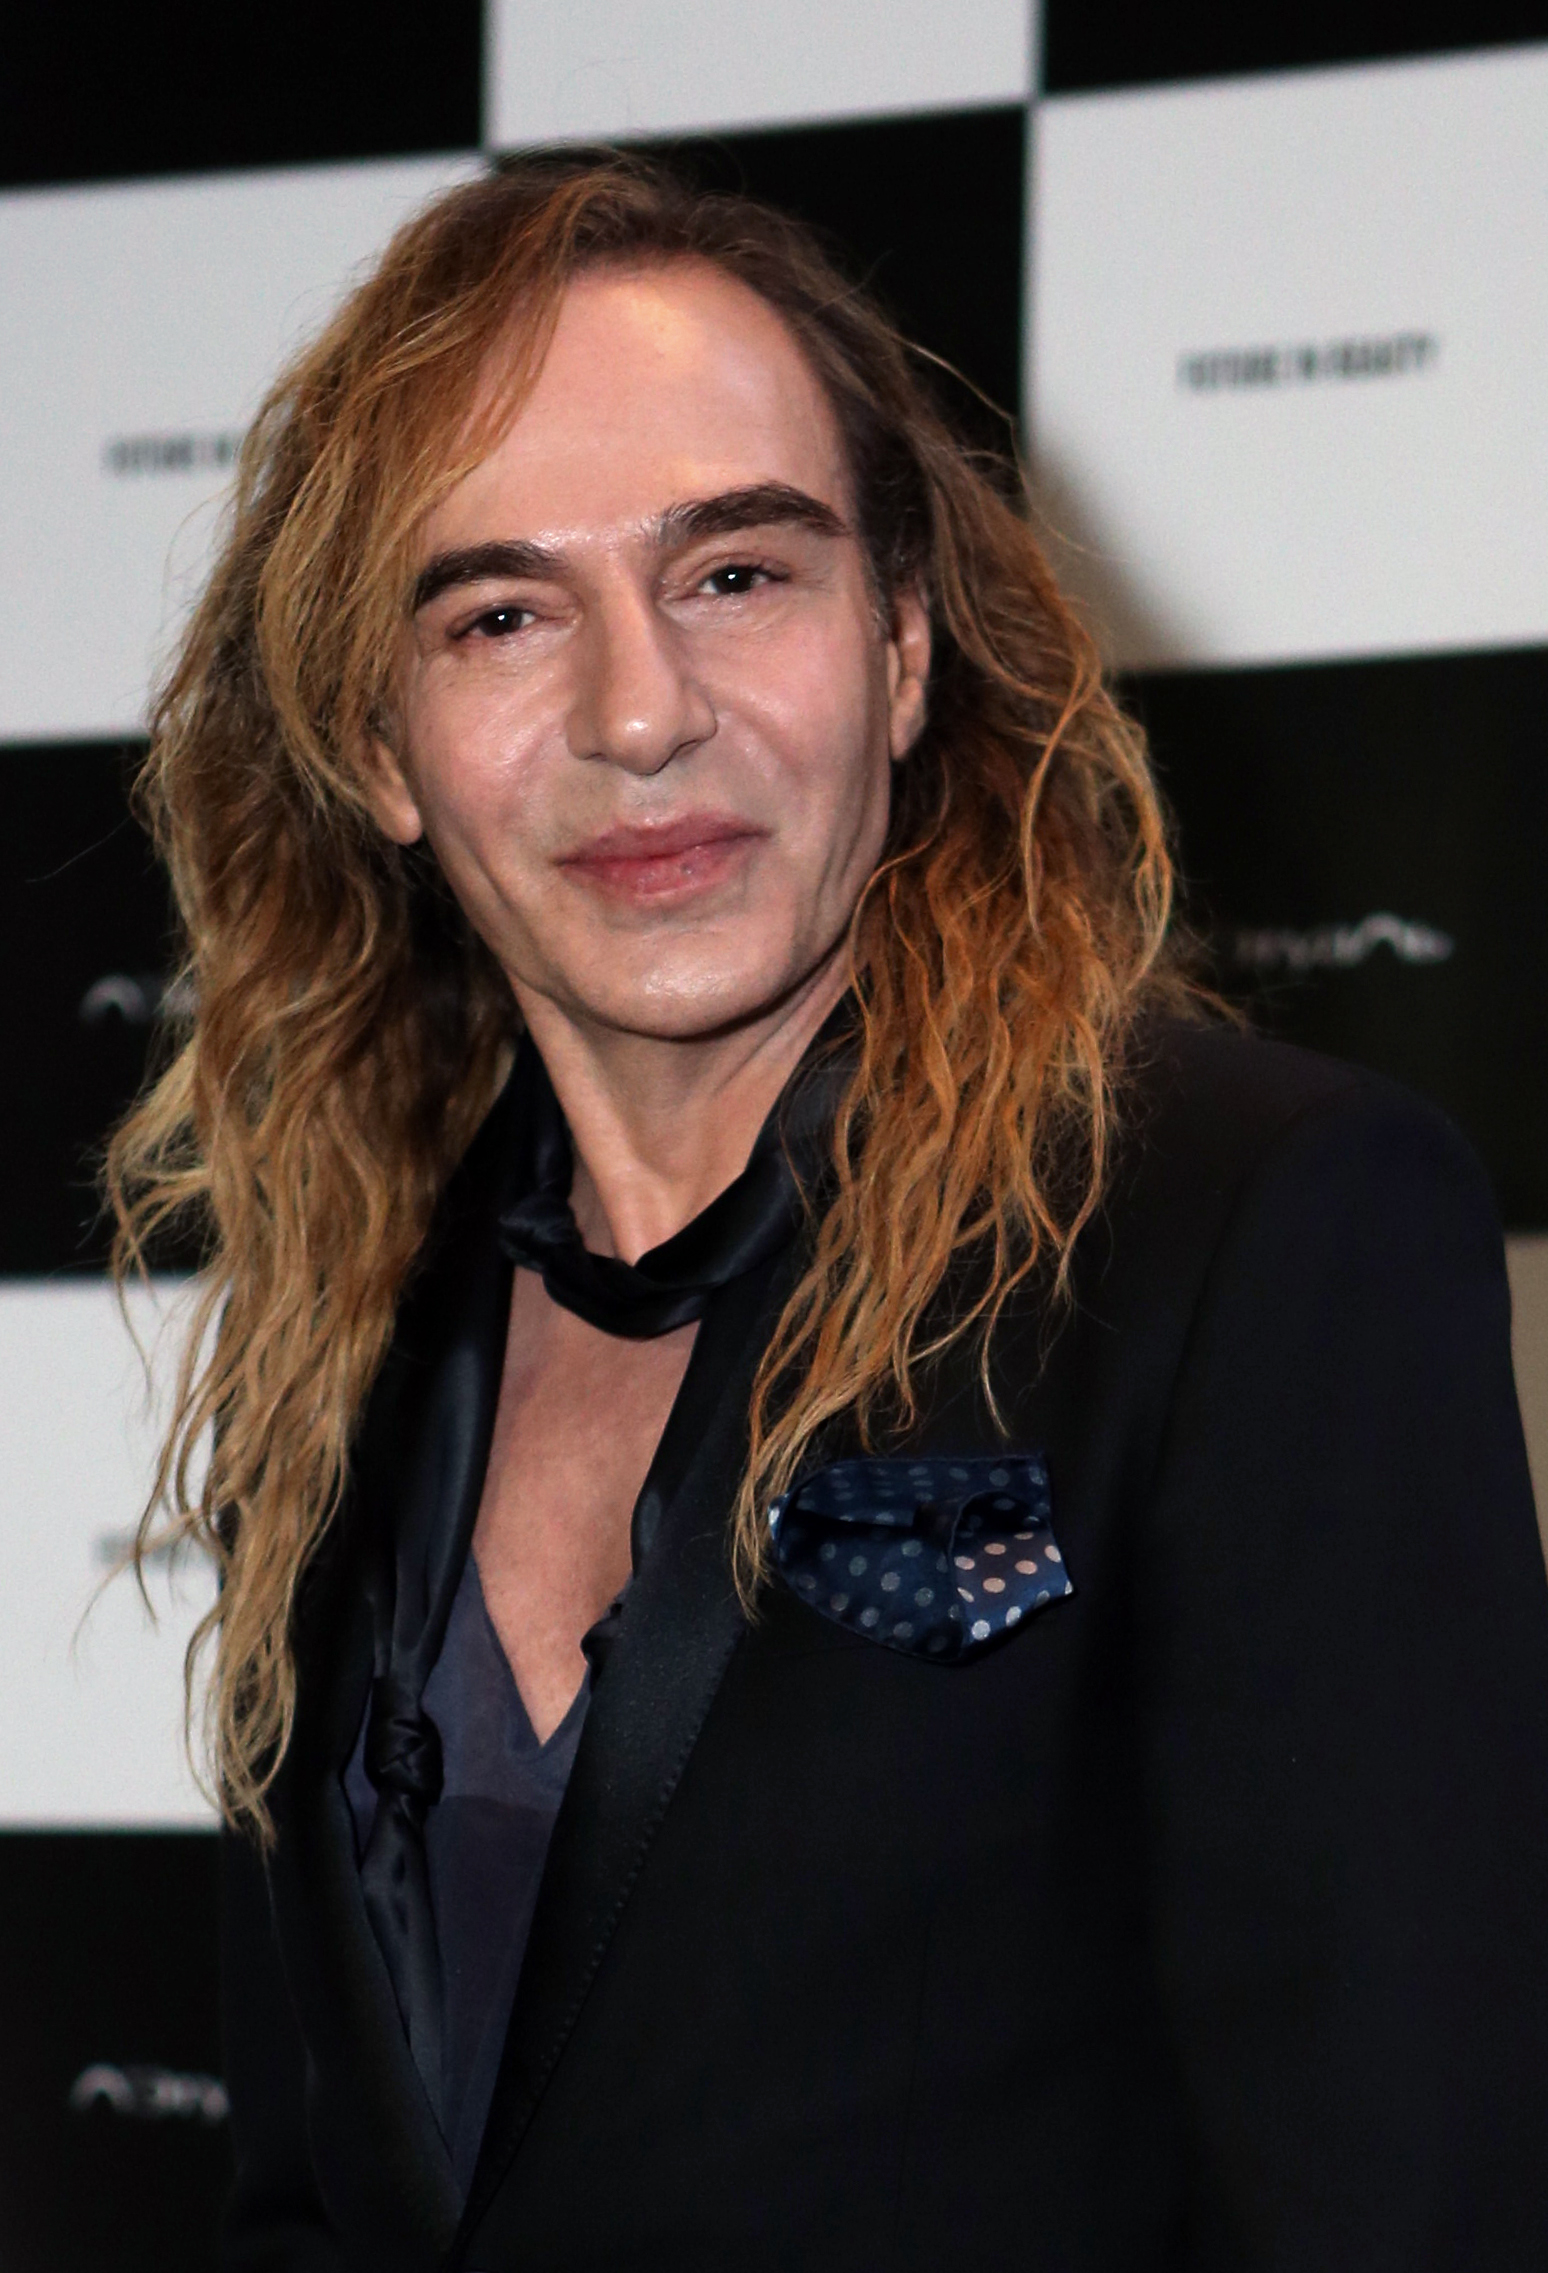 Designer John Galliano poses at Barvikha Luxury Village in Moscow on May 22, 2014.